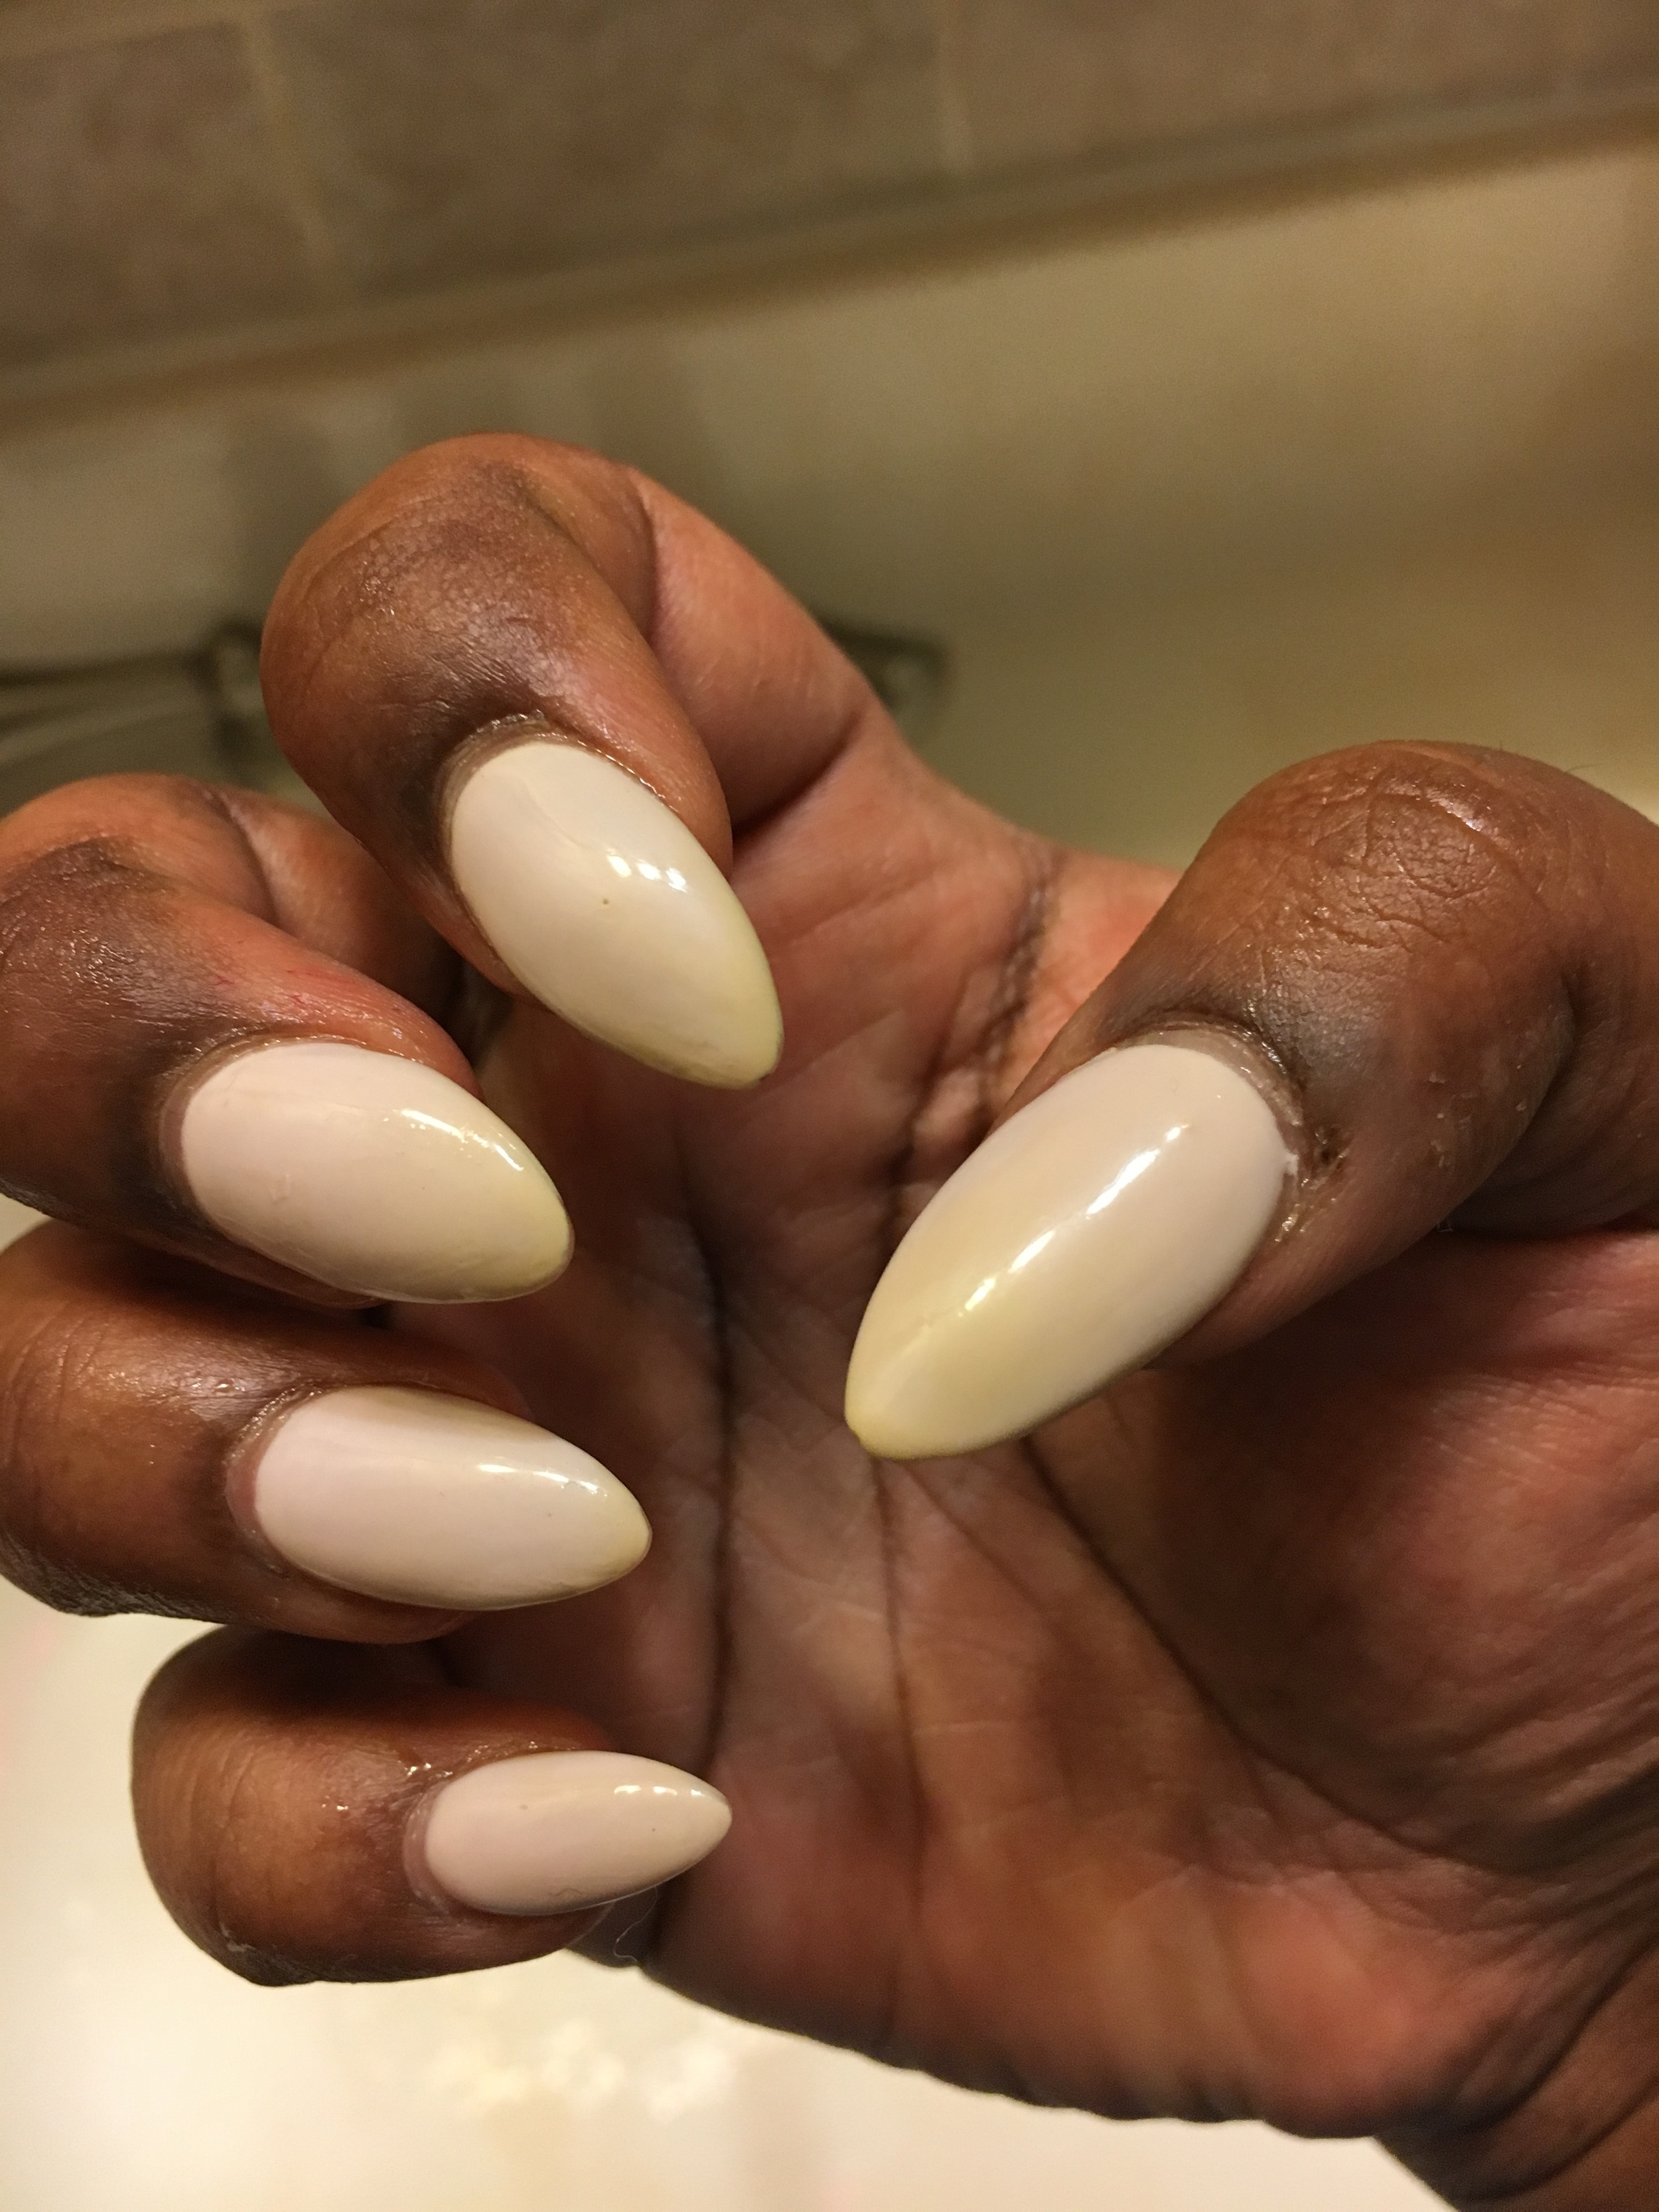 How To Clean Stained Gel Nails : clean, stained, nails, CurryStained, Nails, MissKhanMPLS